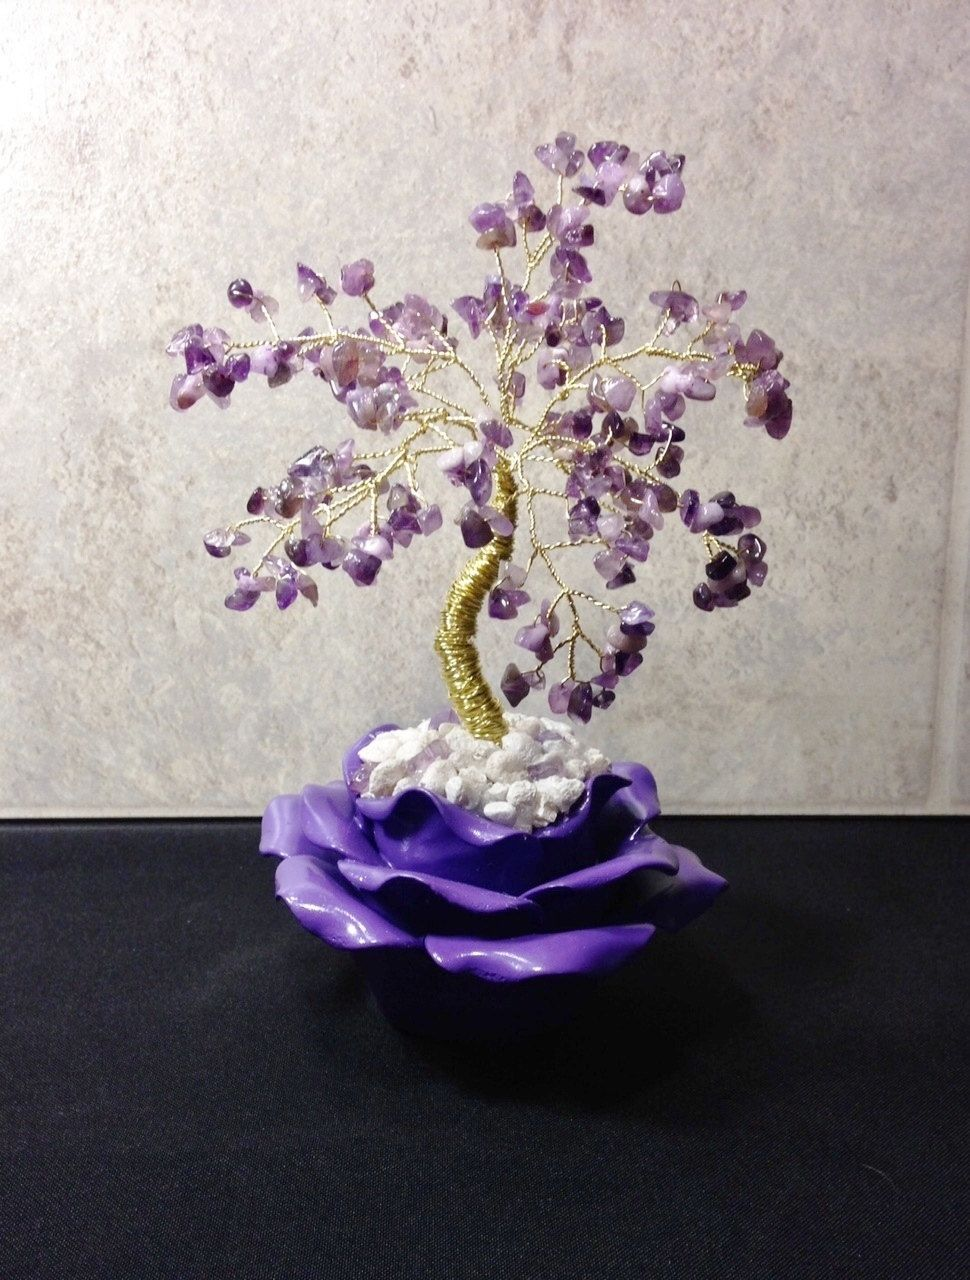 Amethyst crystal gemstone bonsai tree of life feng shui gemstone amethyst crystal gemstone bonsai tree of life feng shui gemstone tree purple amethyst gemstone tree of life in ceramic lotus flower pot by mycrystalforest izmirmasajfo Images